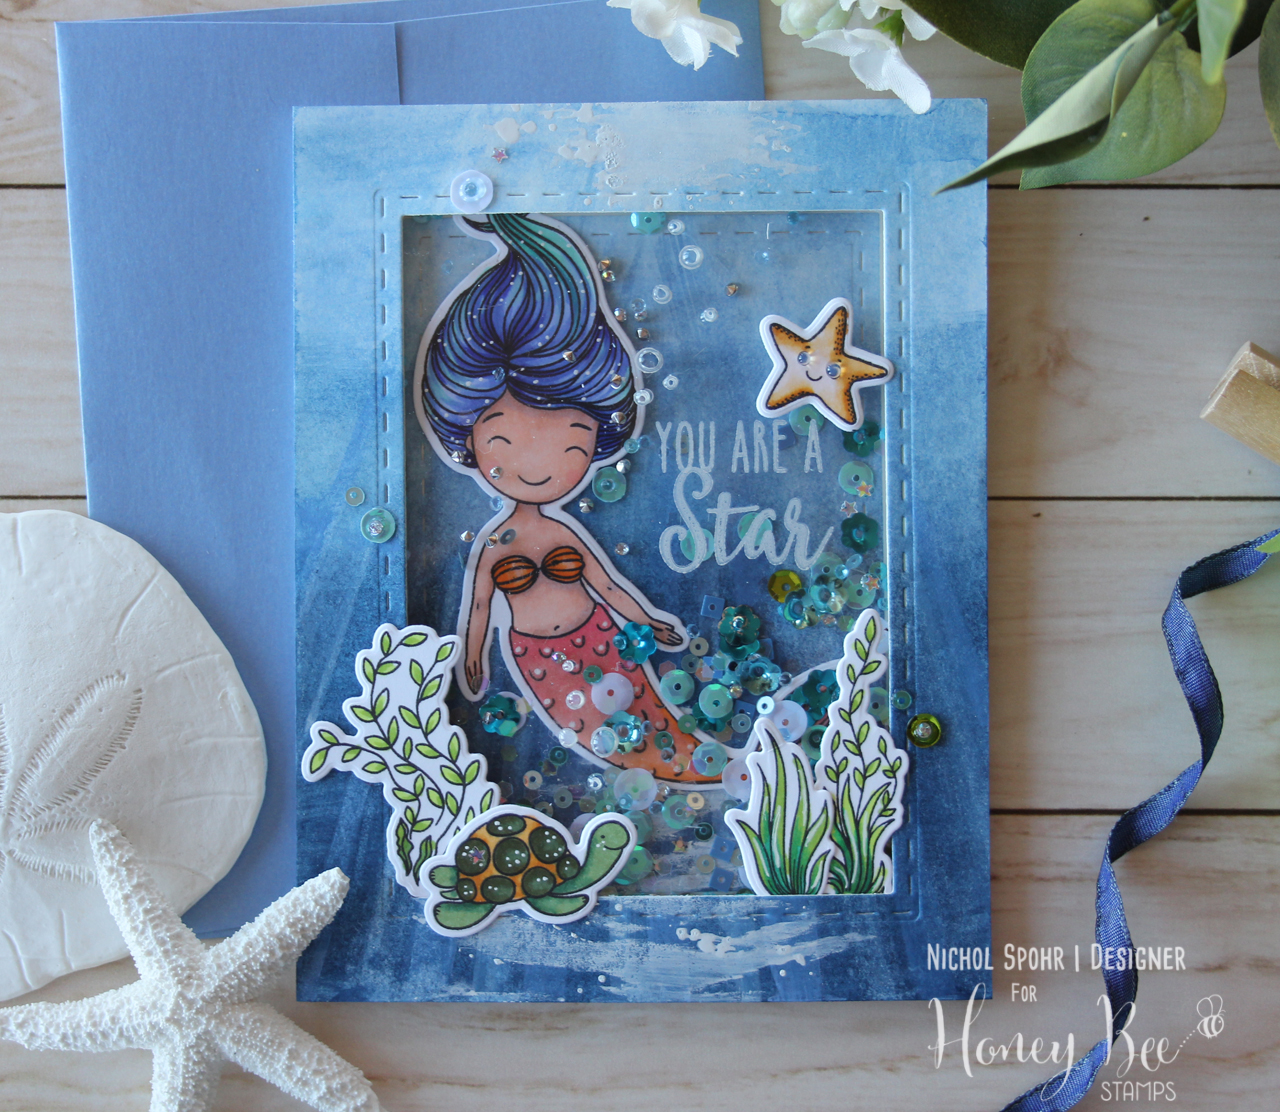 You Are A Star Mermaid Shaker Card